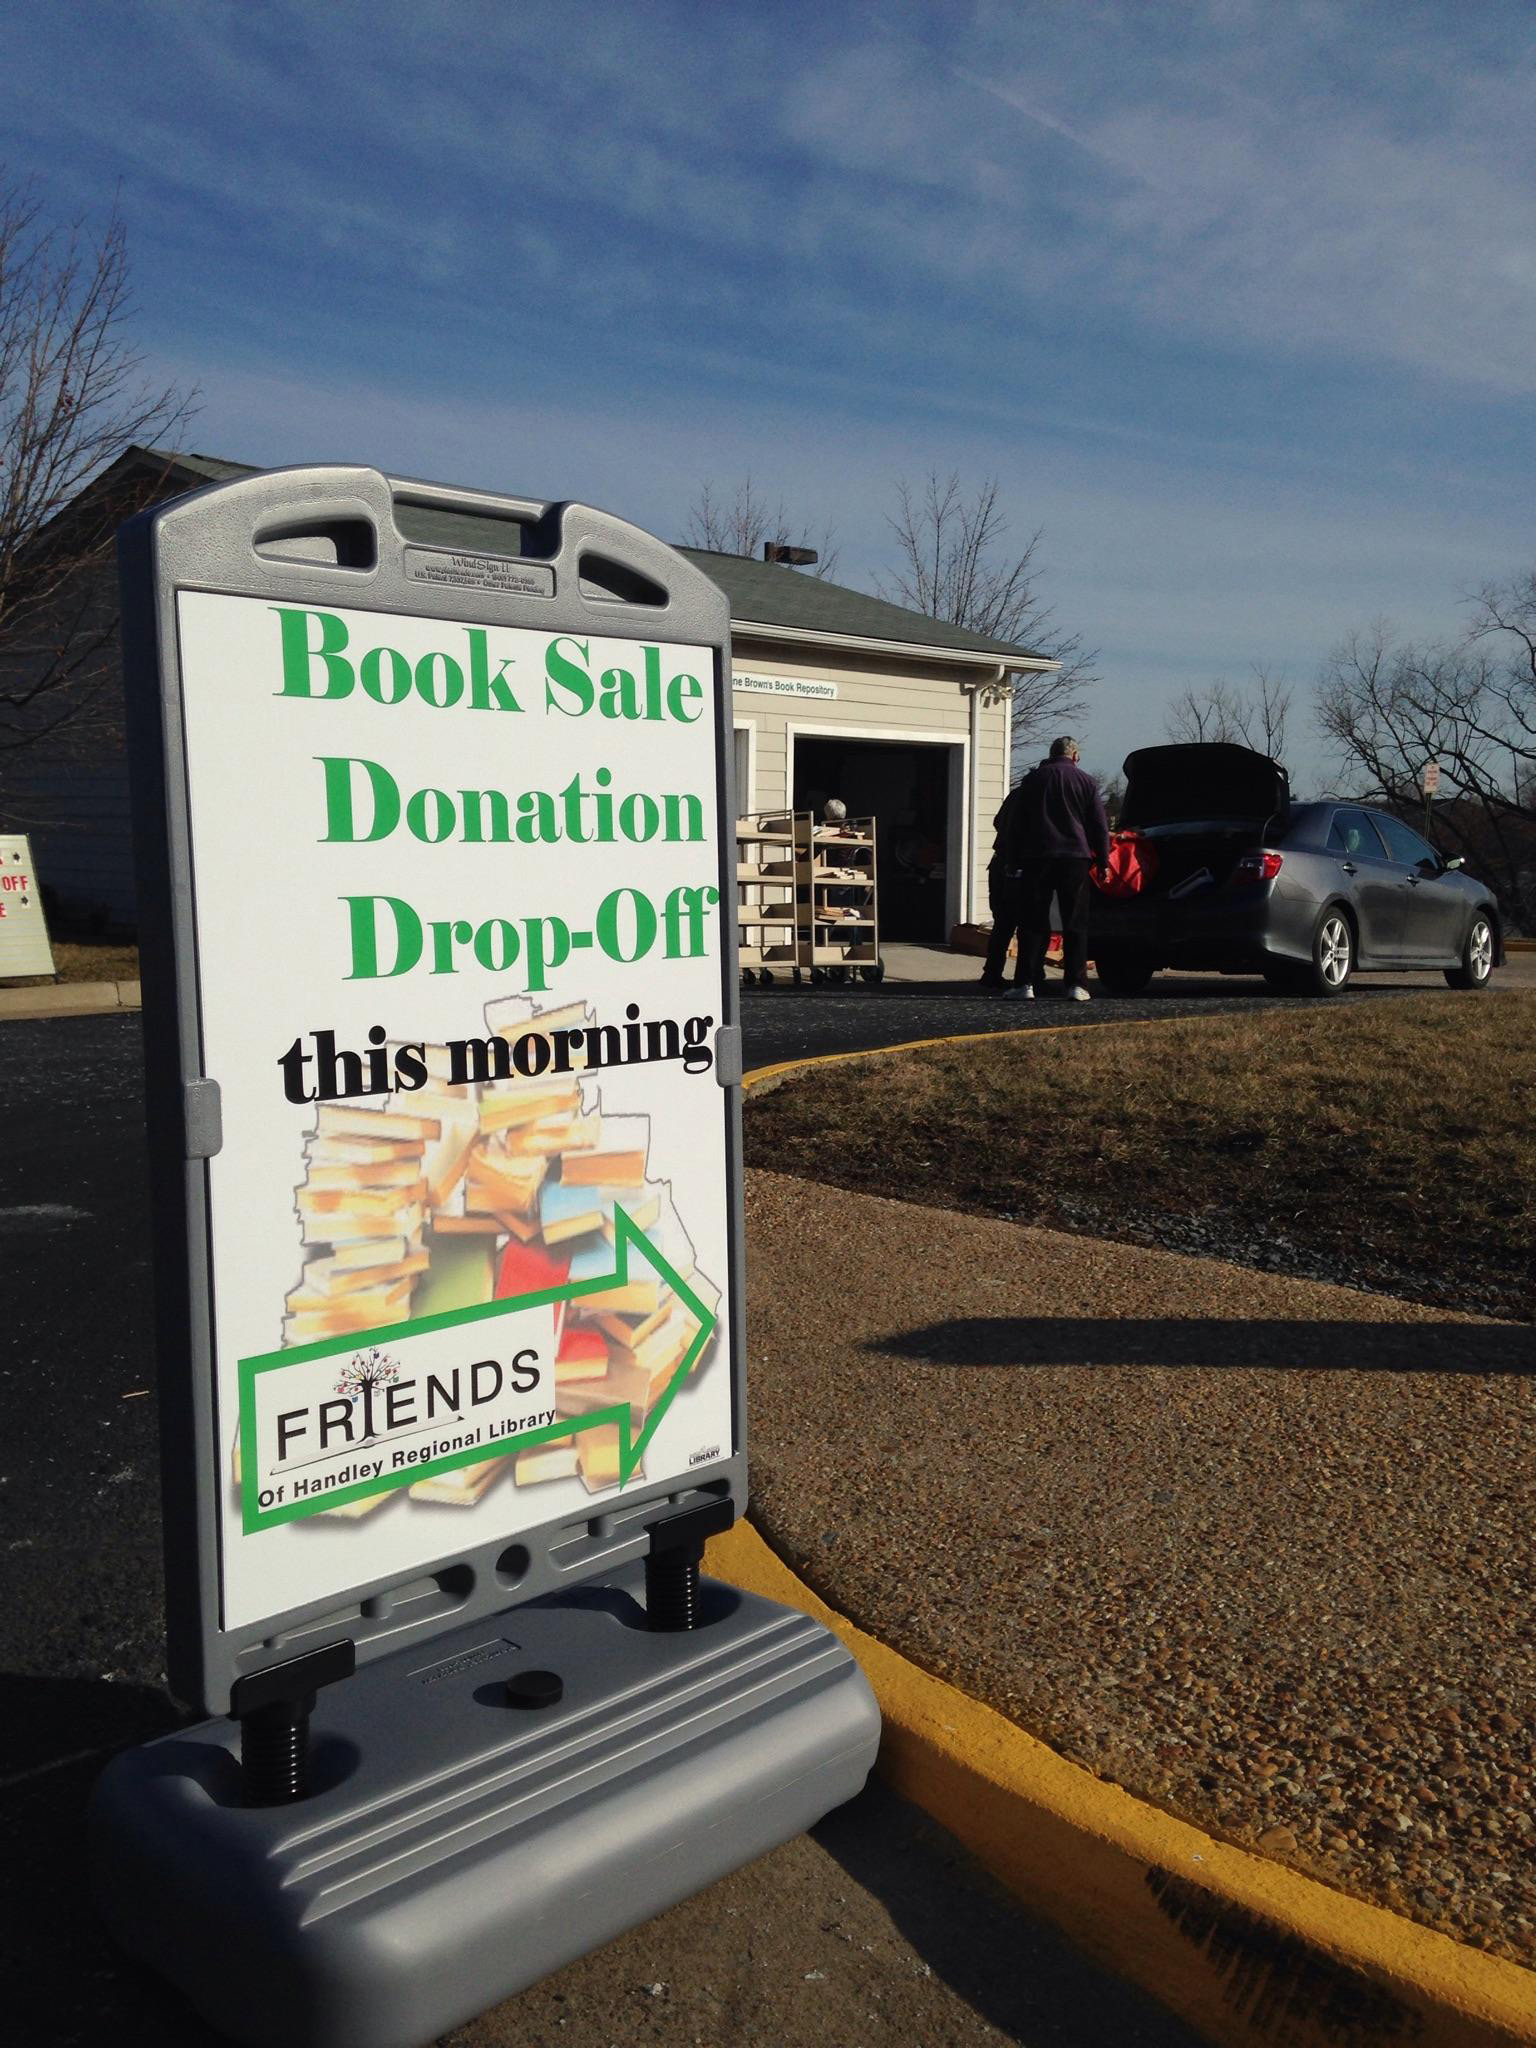 Book Drop Off Morning at Bowman Library